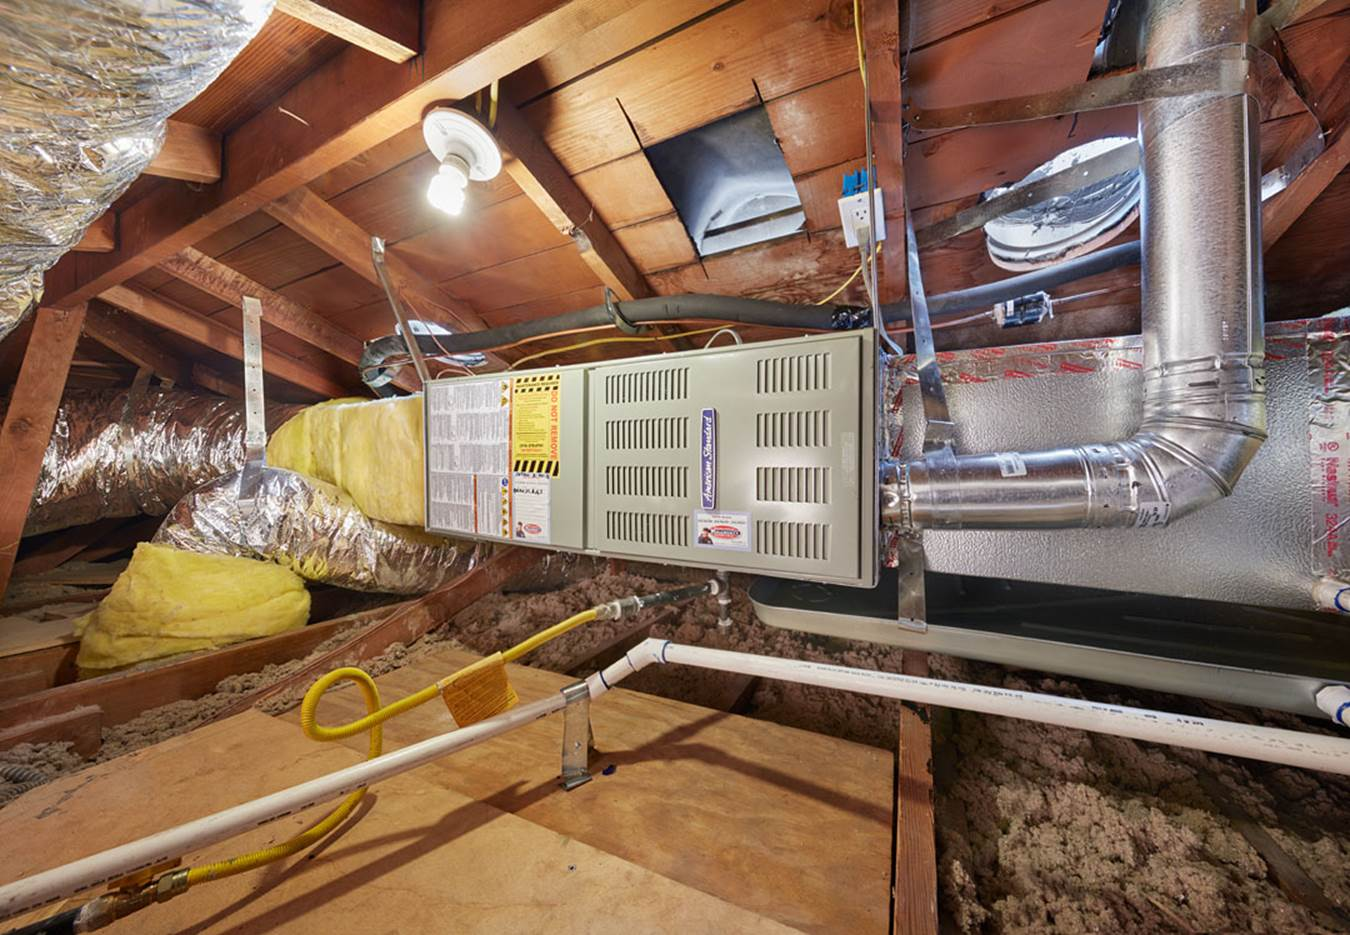 Garage Attic Air Conditioner Moving A Furnace To The Attic Some Things To Consider Kilowatt